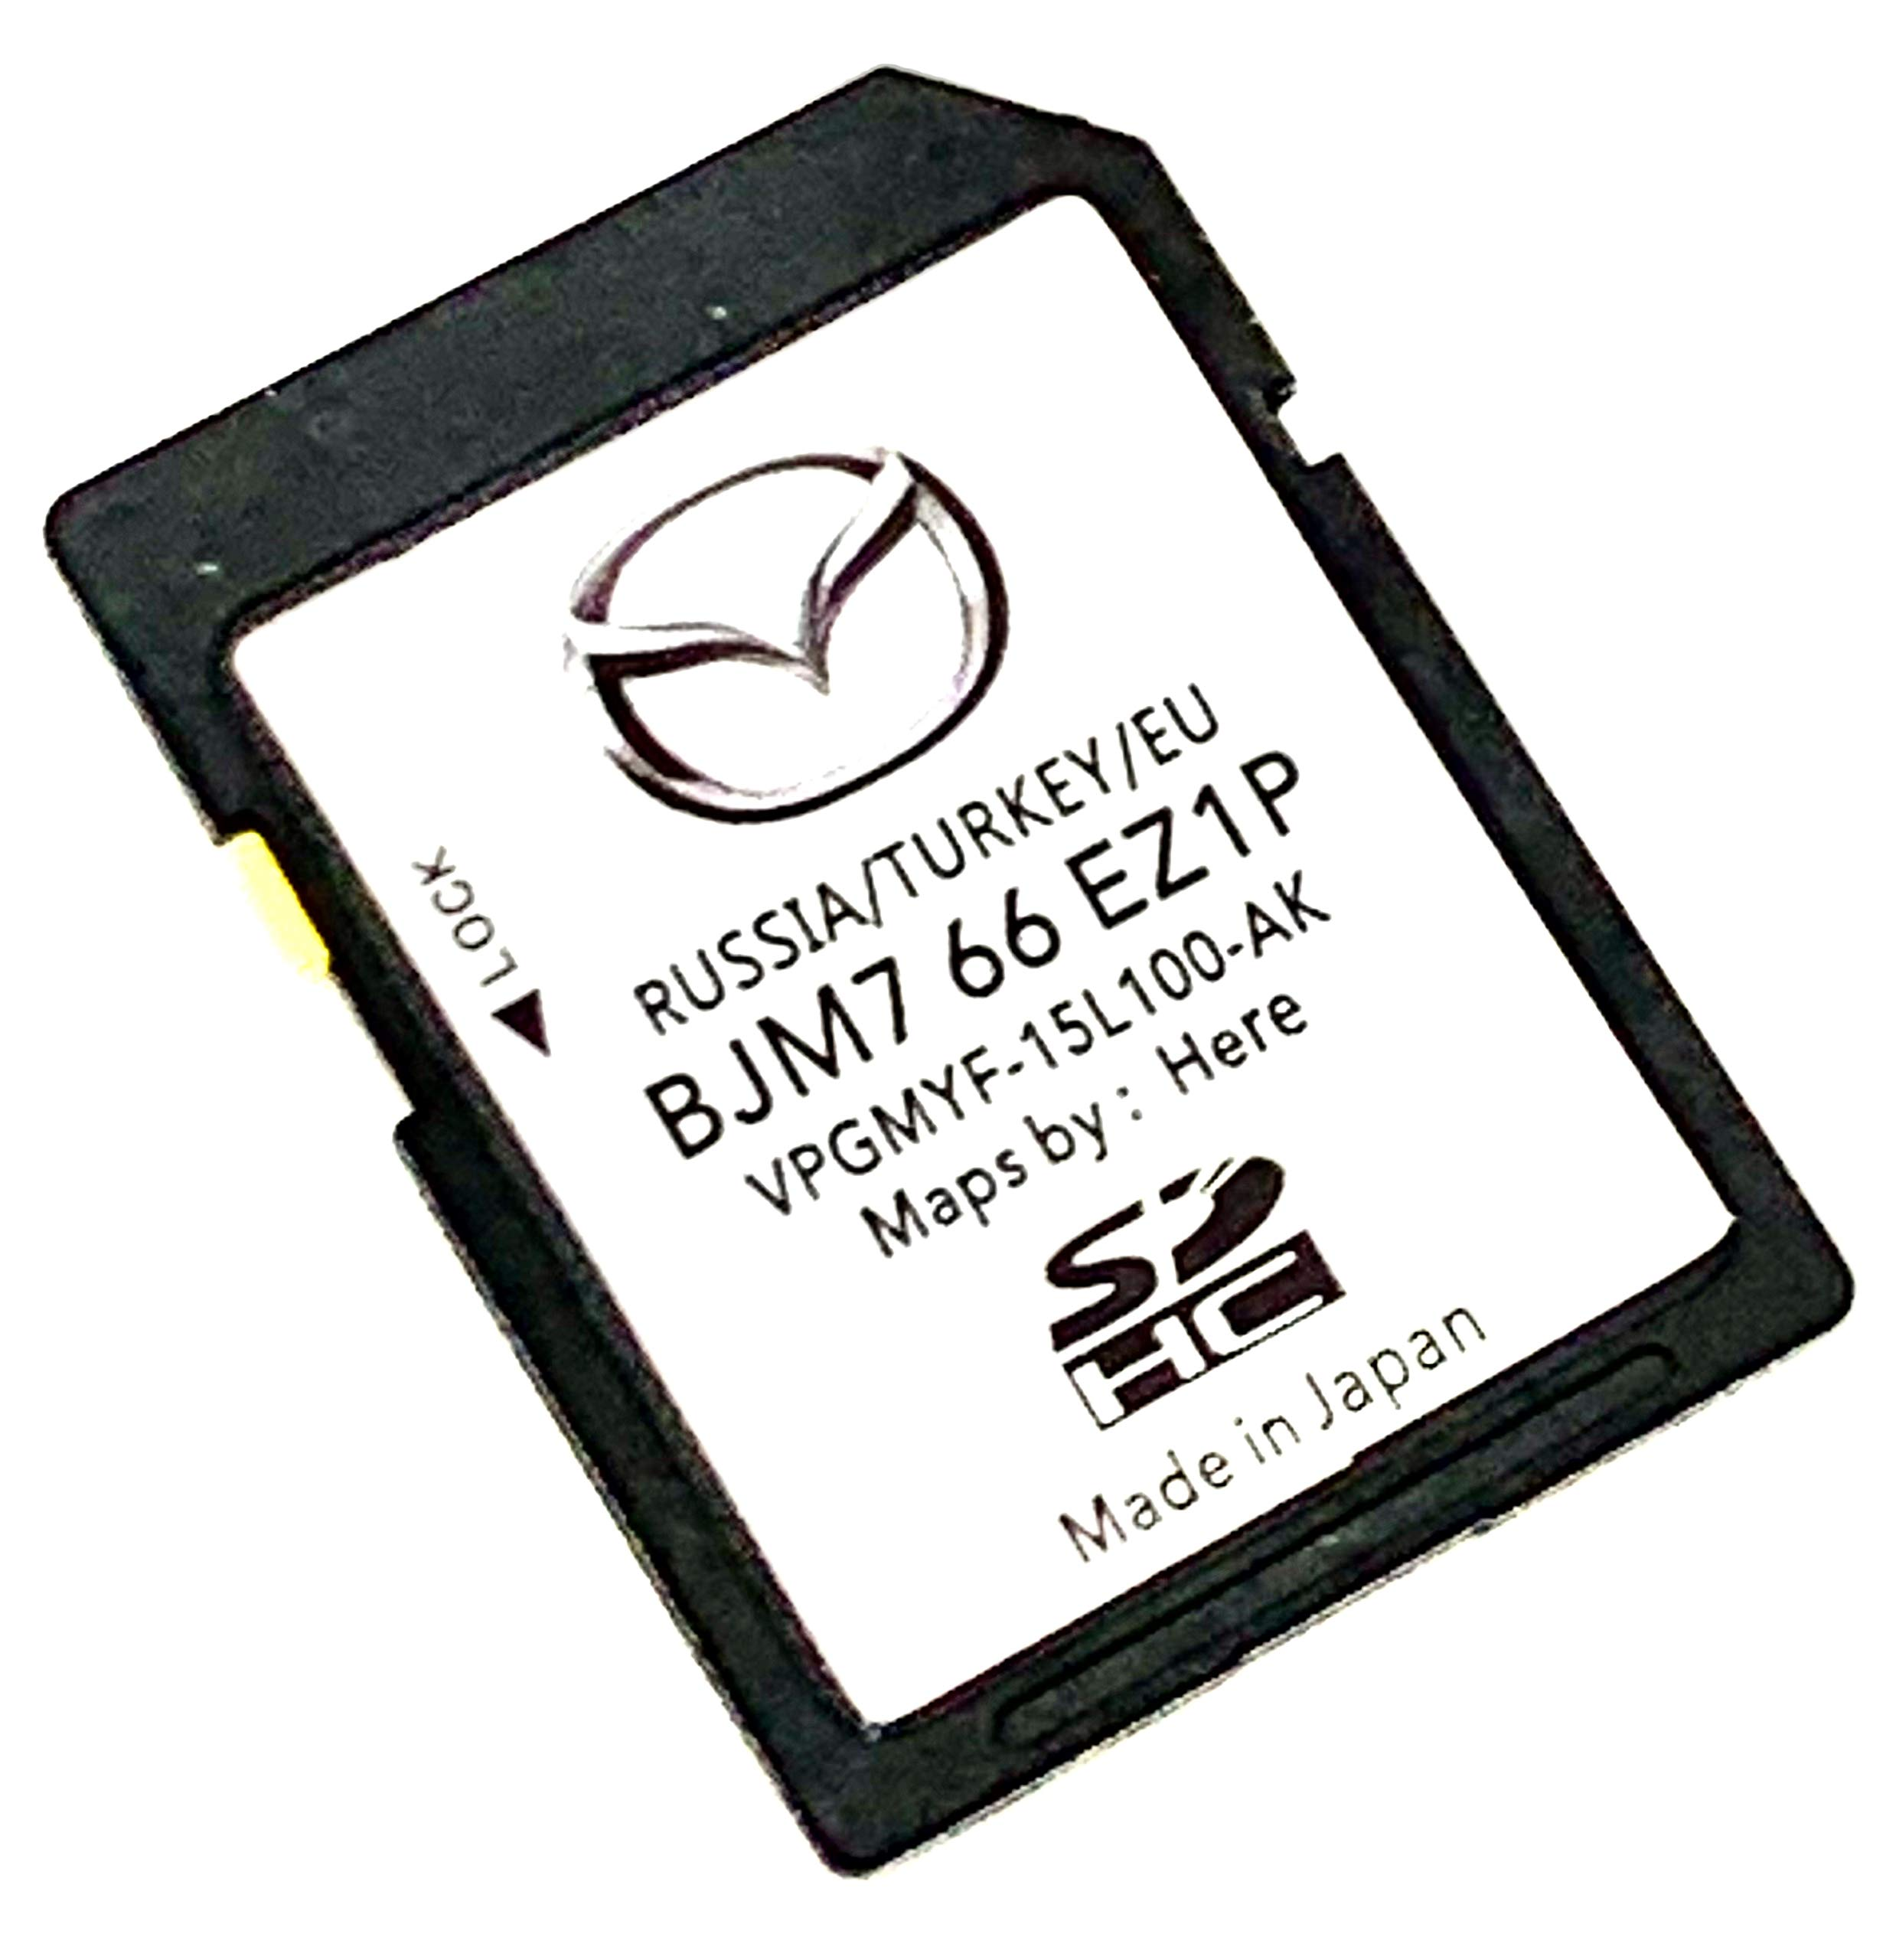 Latest SD Card 20//2021 for Mazda SkyActiv Connect Navigation SD Card 2020//2021 Sat Nav Map Update Cover All Europe Turkey Russia Part Number: BJM7-66-EZ1P